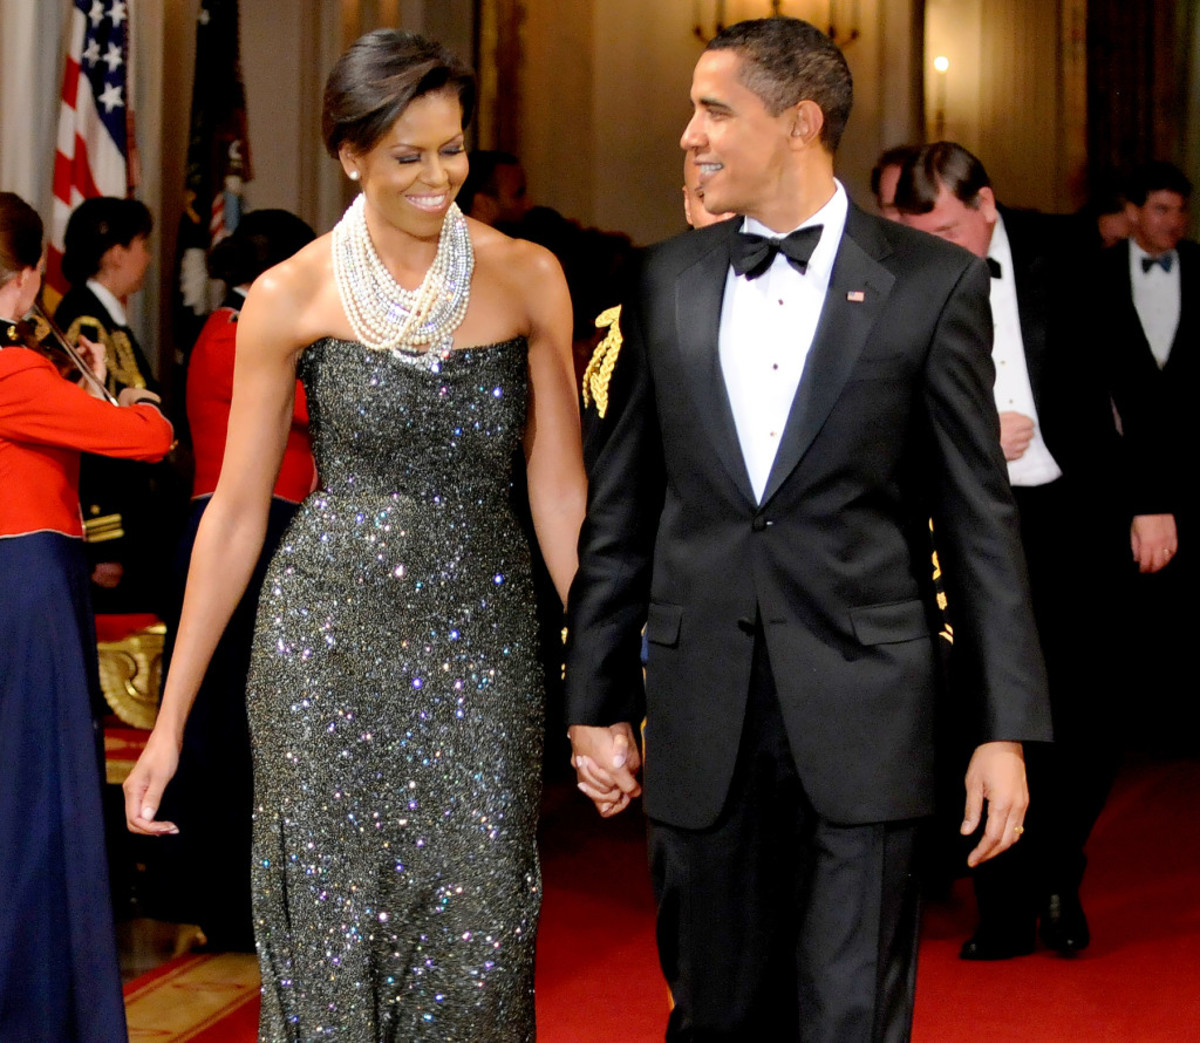 marriage-compatibility-of-barack-and-michelle-obama-according-to-the-zodiac